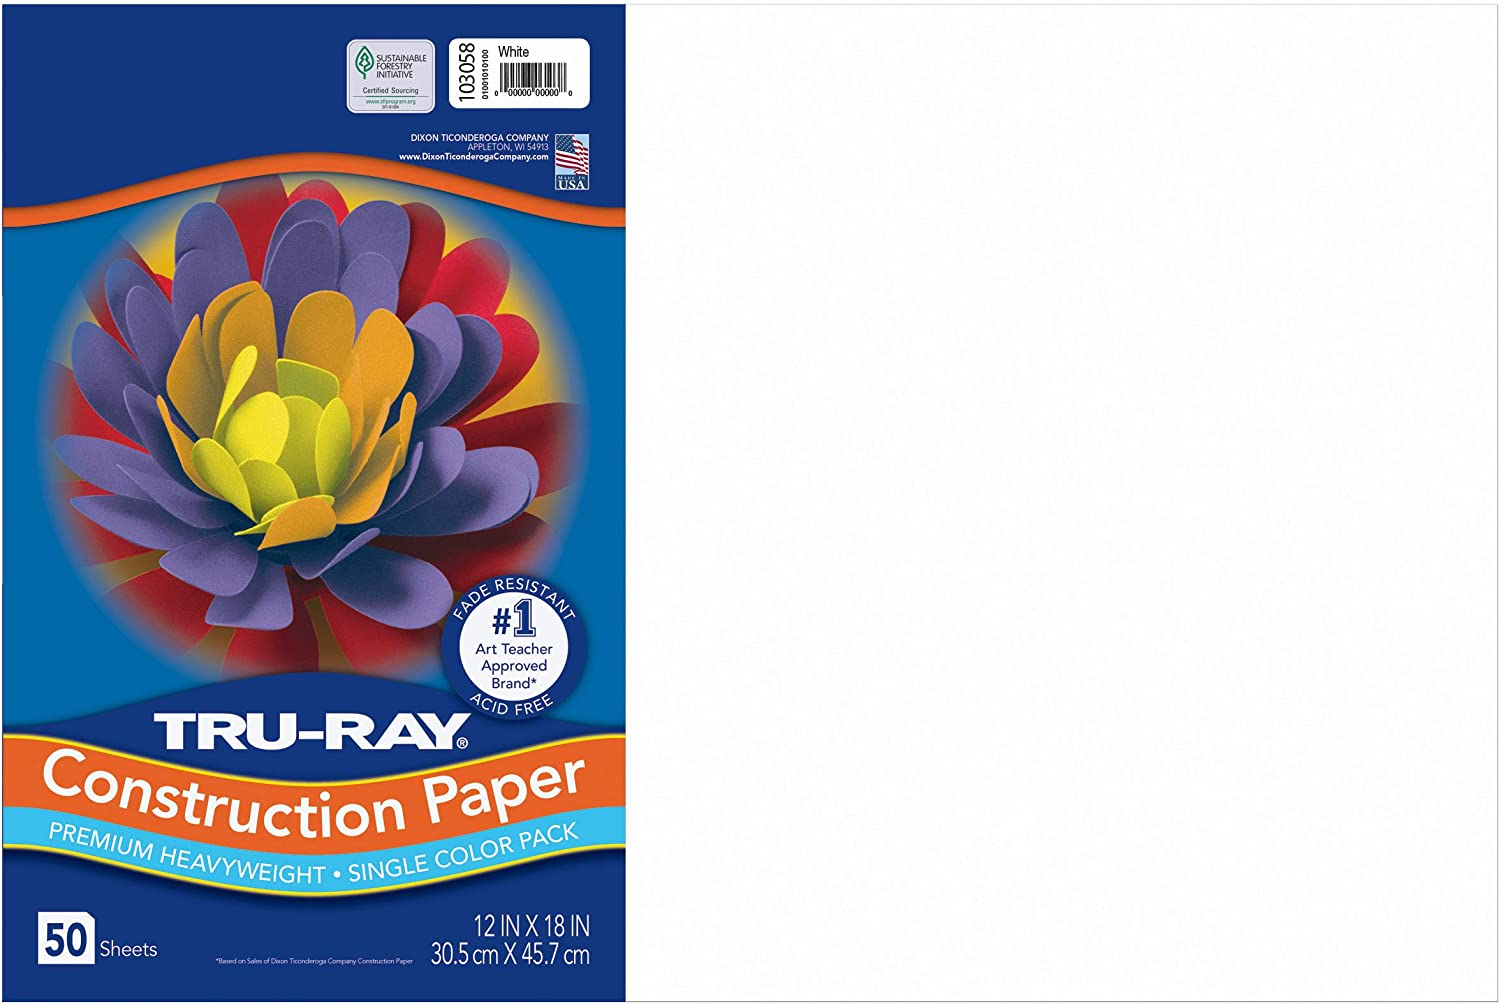 """Tru-Ray Heavyweight Construction Paper, White, 12"""" x 18"""", 50 Sheets : White Paper : Office Products"""